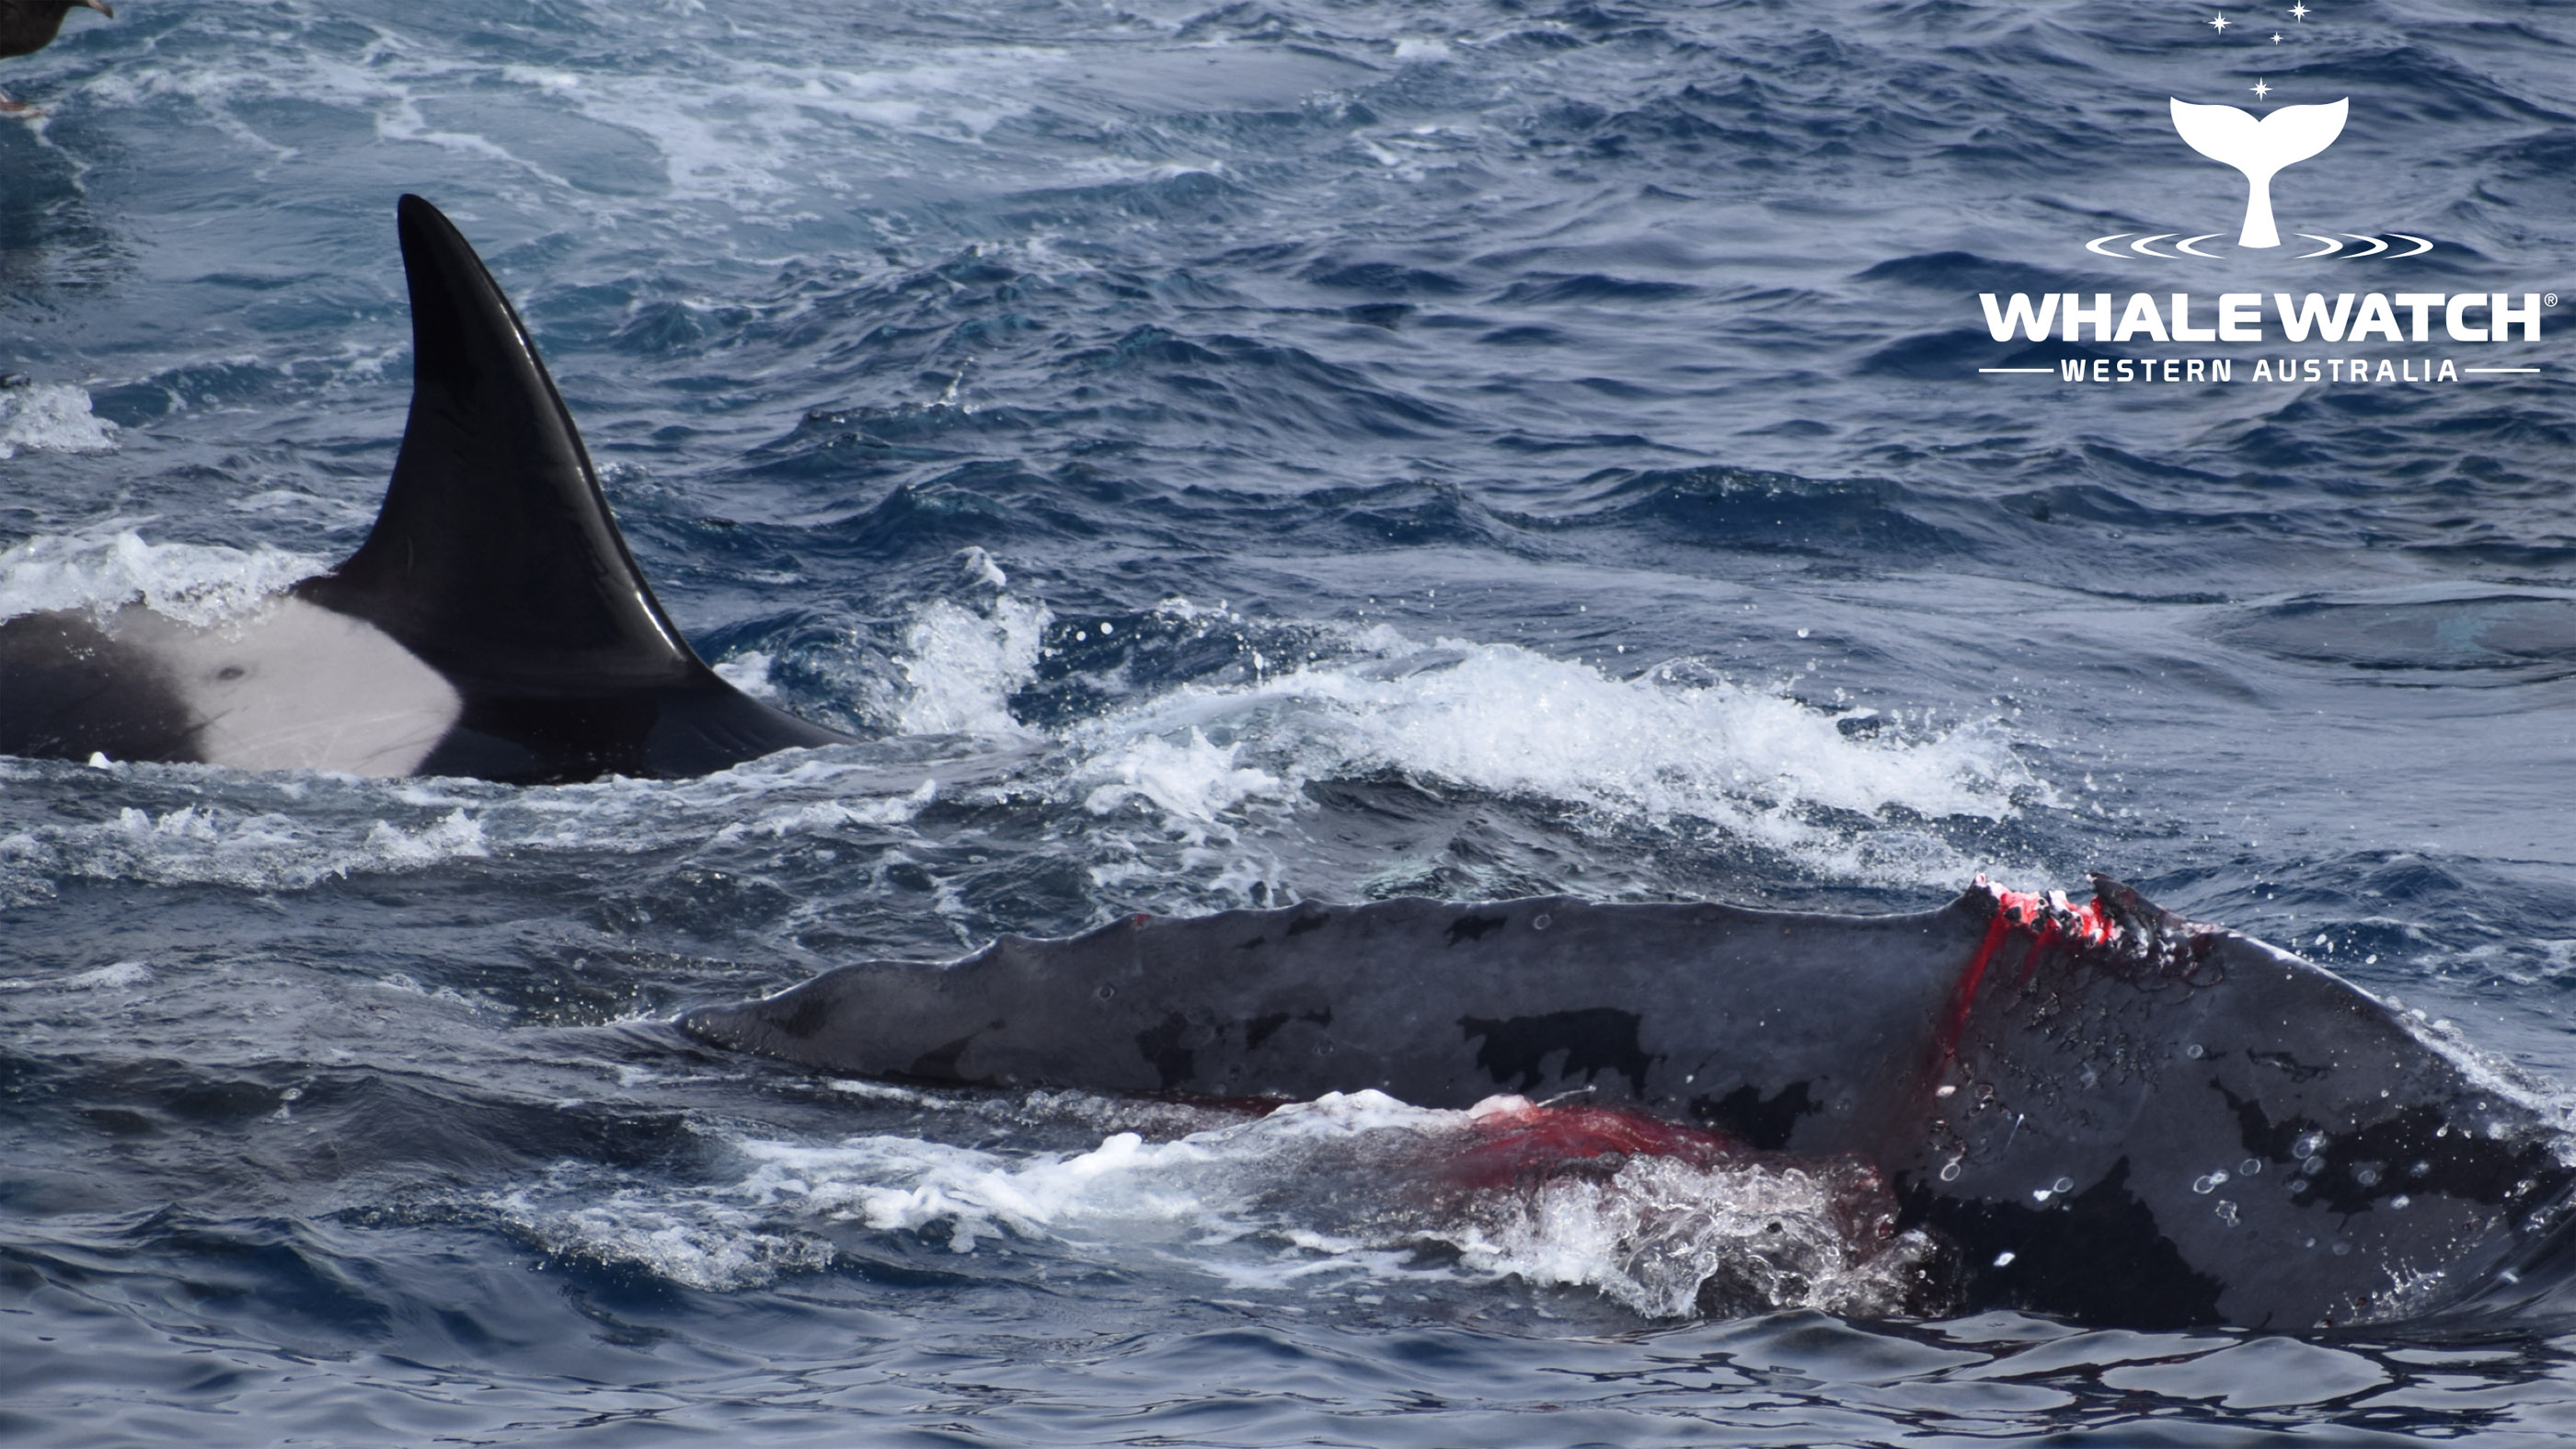 A humpback whale survived a 4-hour attack by pods of orca.